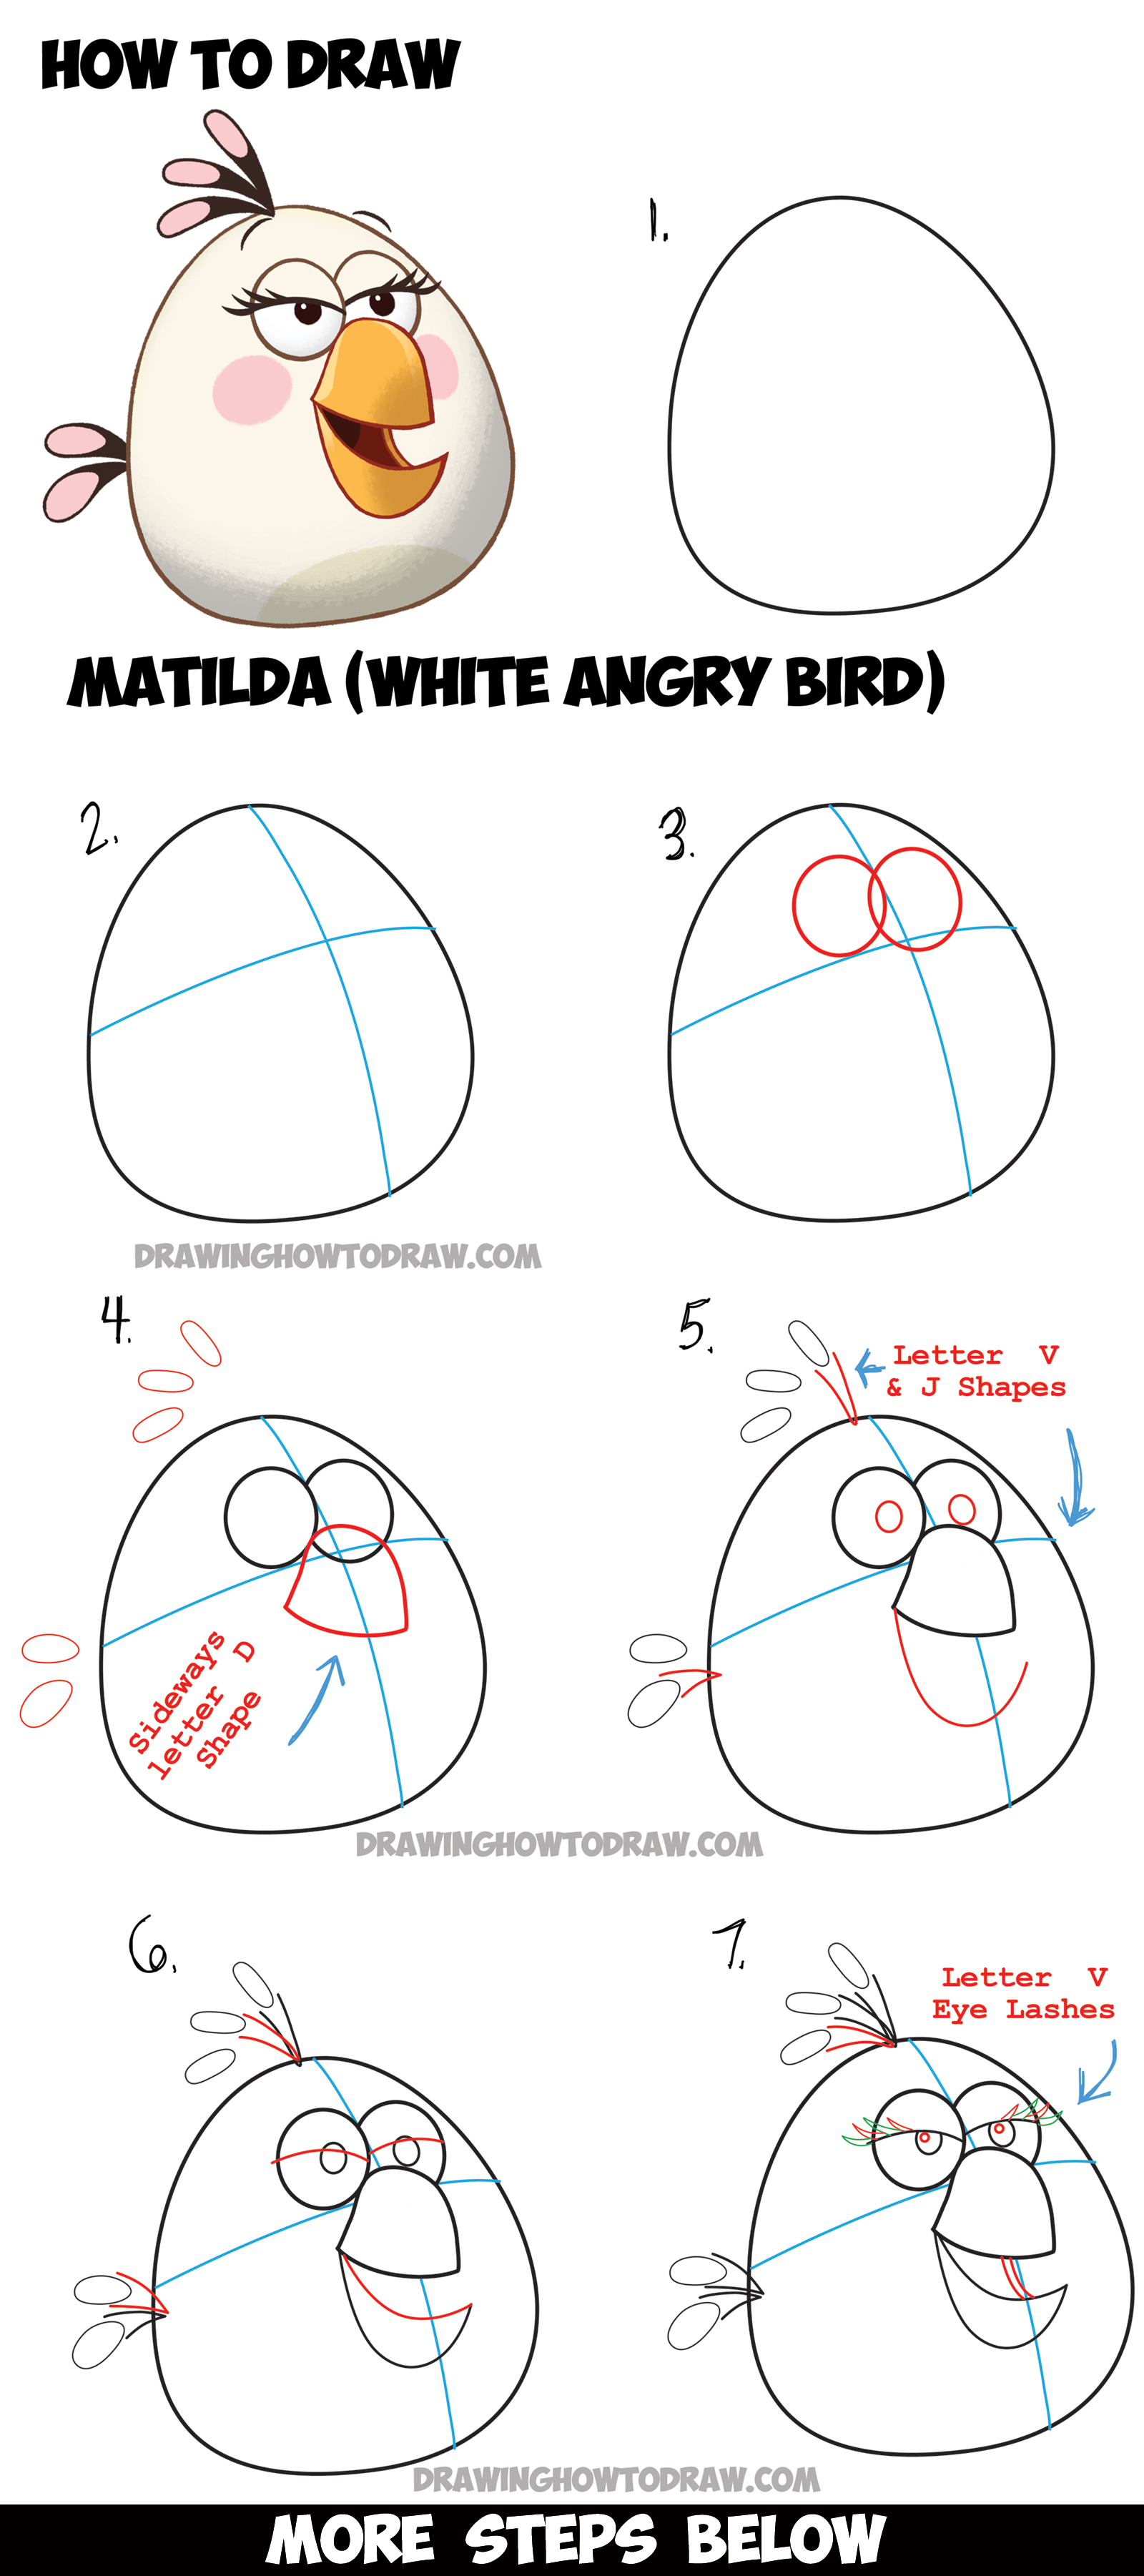 Angry bird characters archives how to draw step by step for Learn drawing online step by step